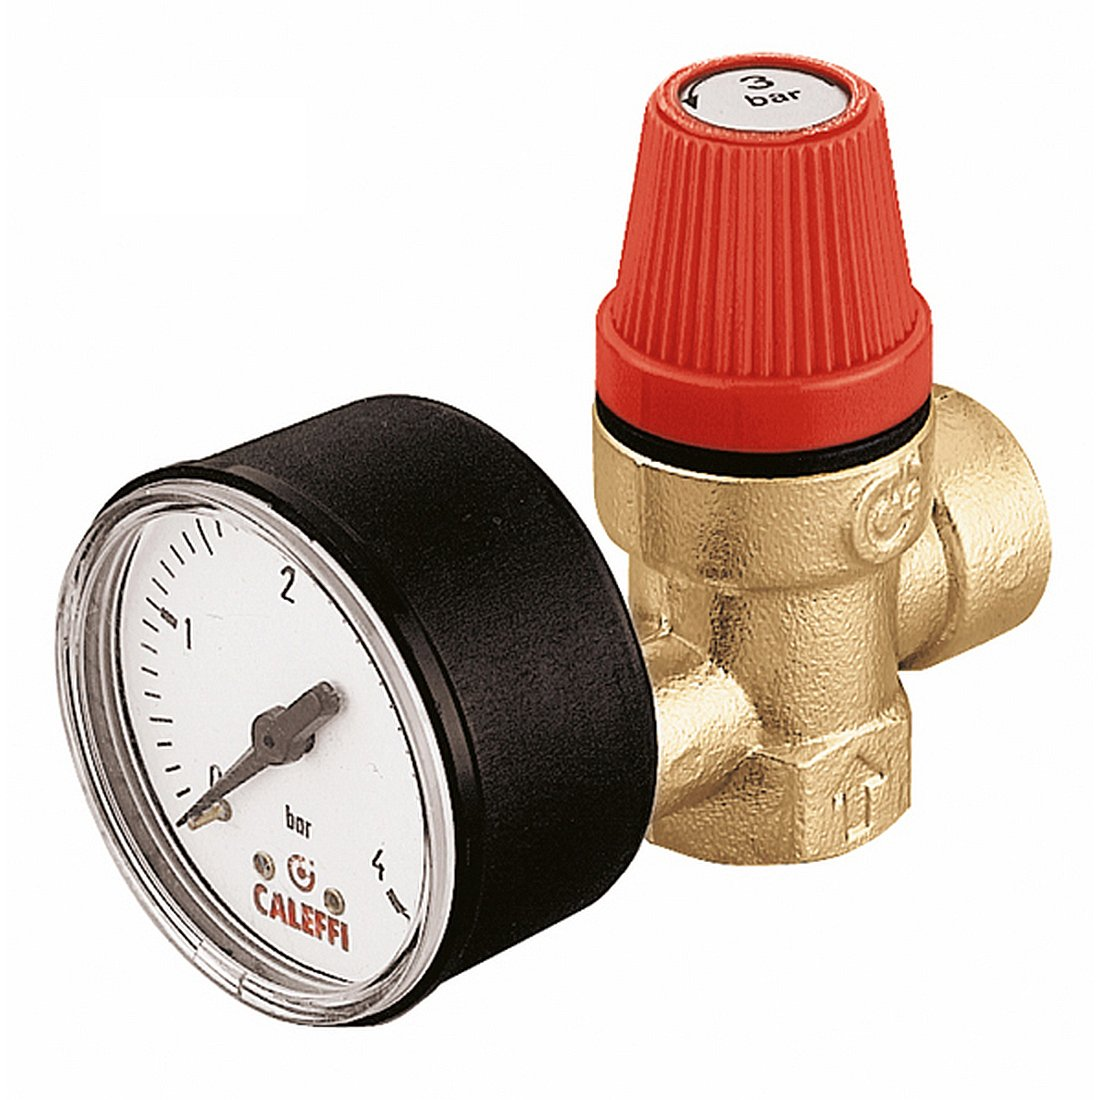 Caleffi Safety Relief Valve 1/2'' x 1/2'' Female Connections 6 Bar with Pressure Gauge 313460